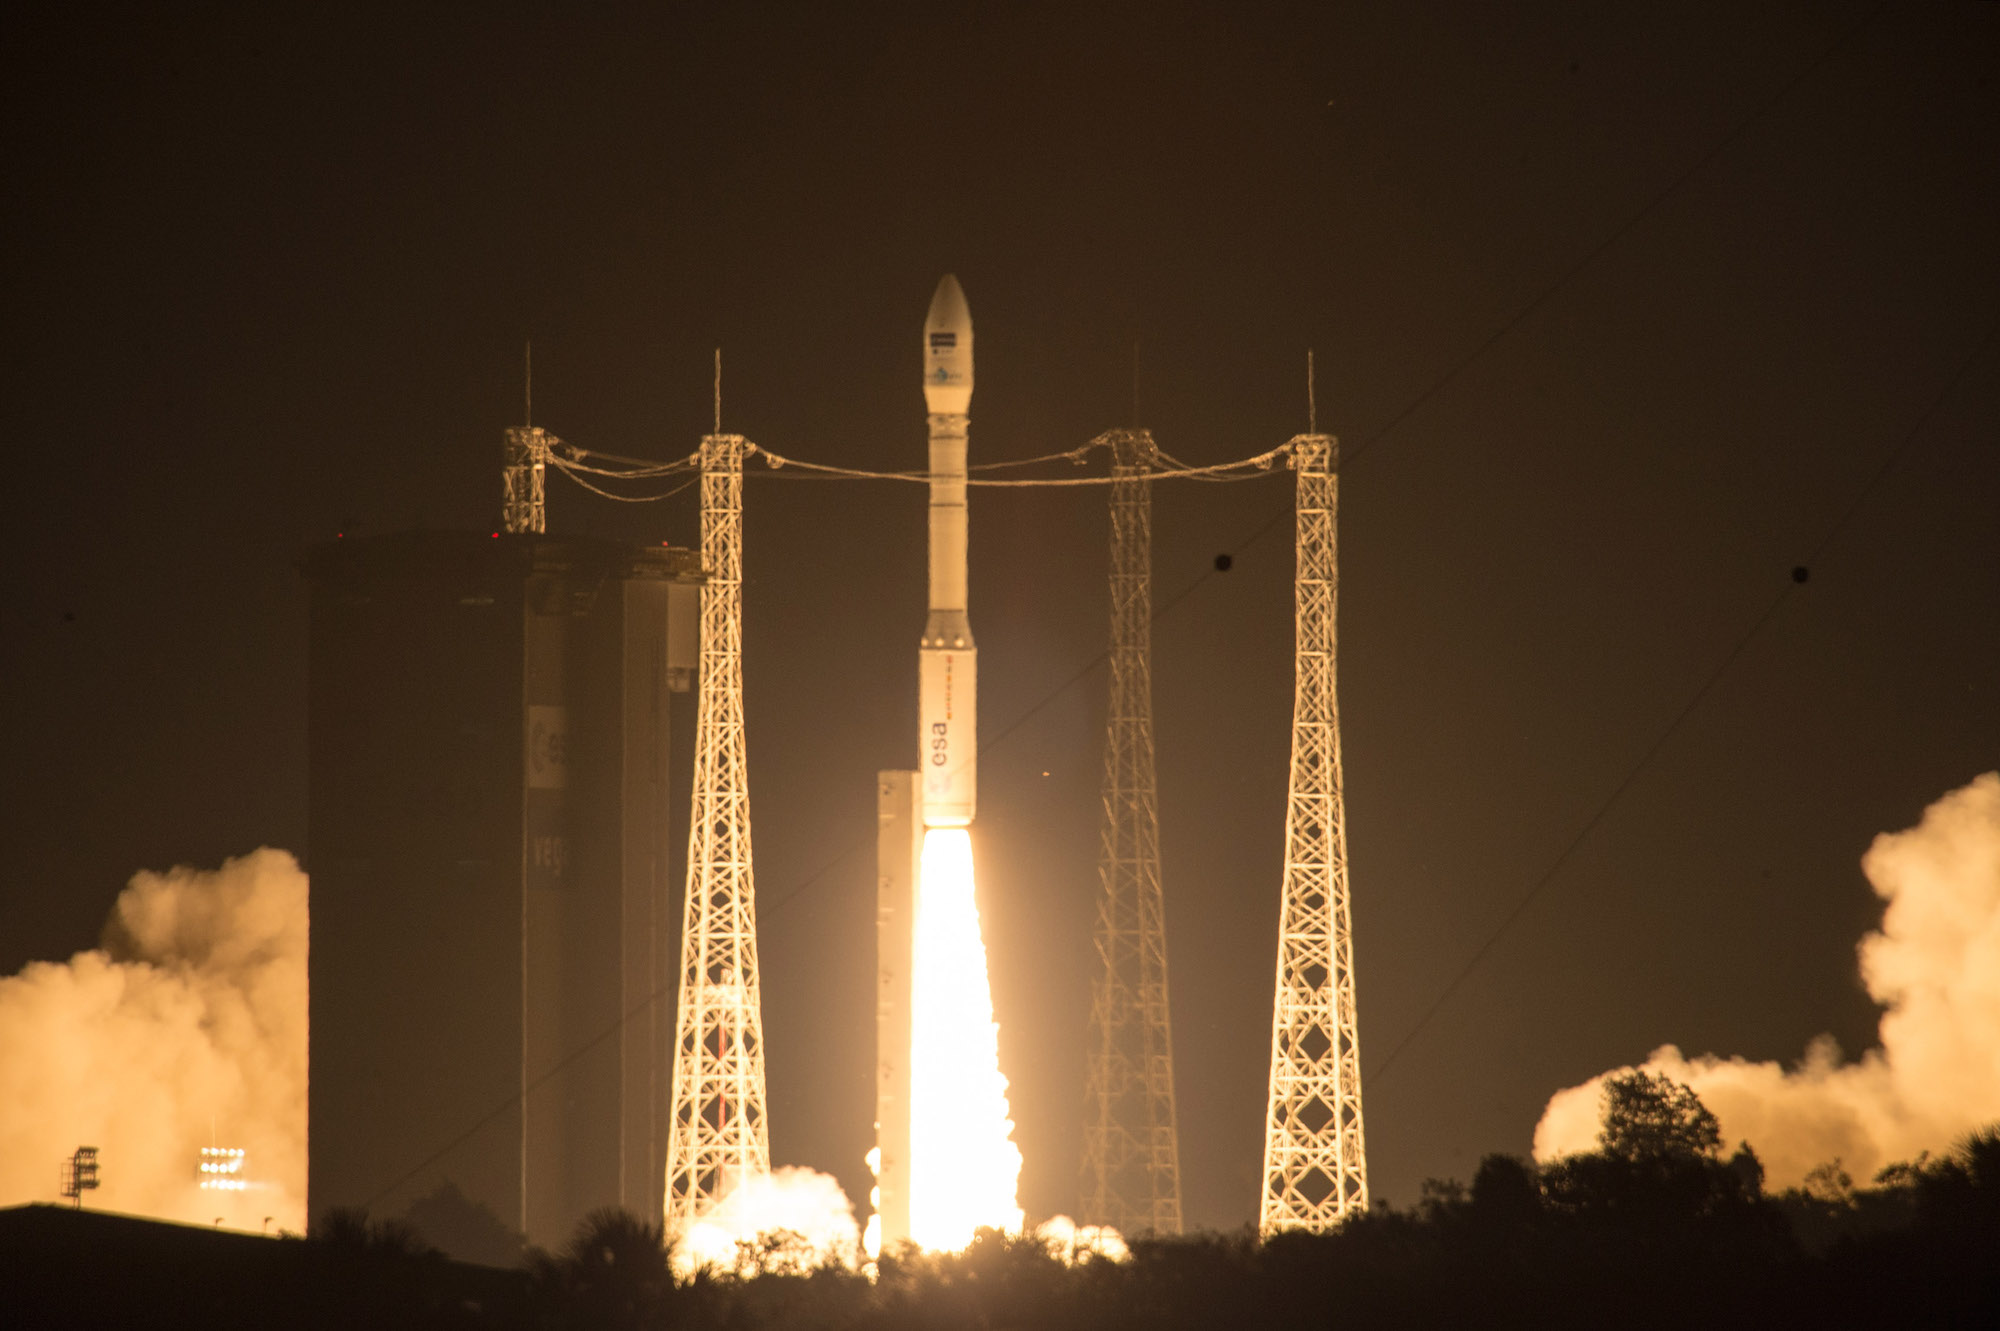 The Vega rocket with Sentinel 2A blasted off at 0151:58 GMT Tuesday (9:51:58 p.m. EDT Monday) from Kourou, French Guiana. Credit: ESA–M. Pedoussaut, 2015